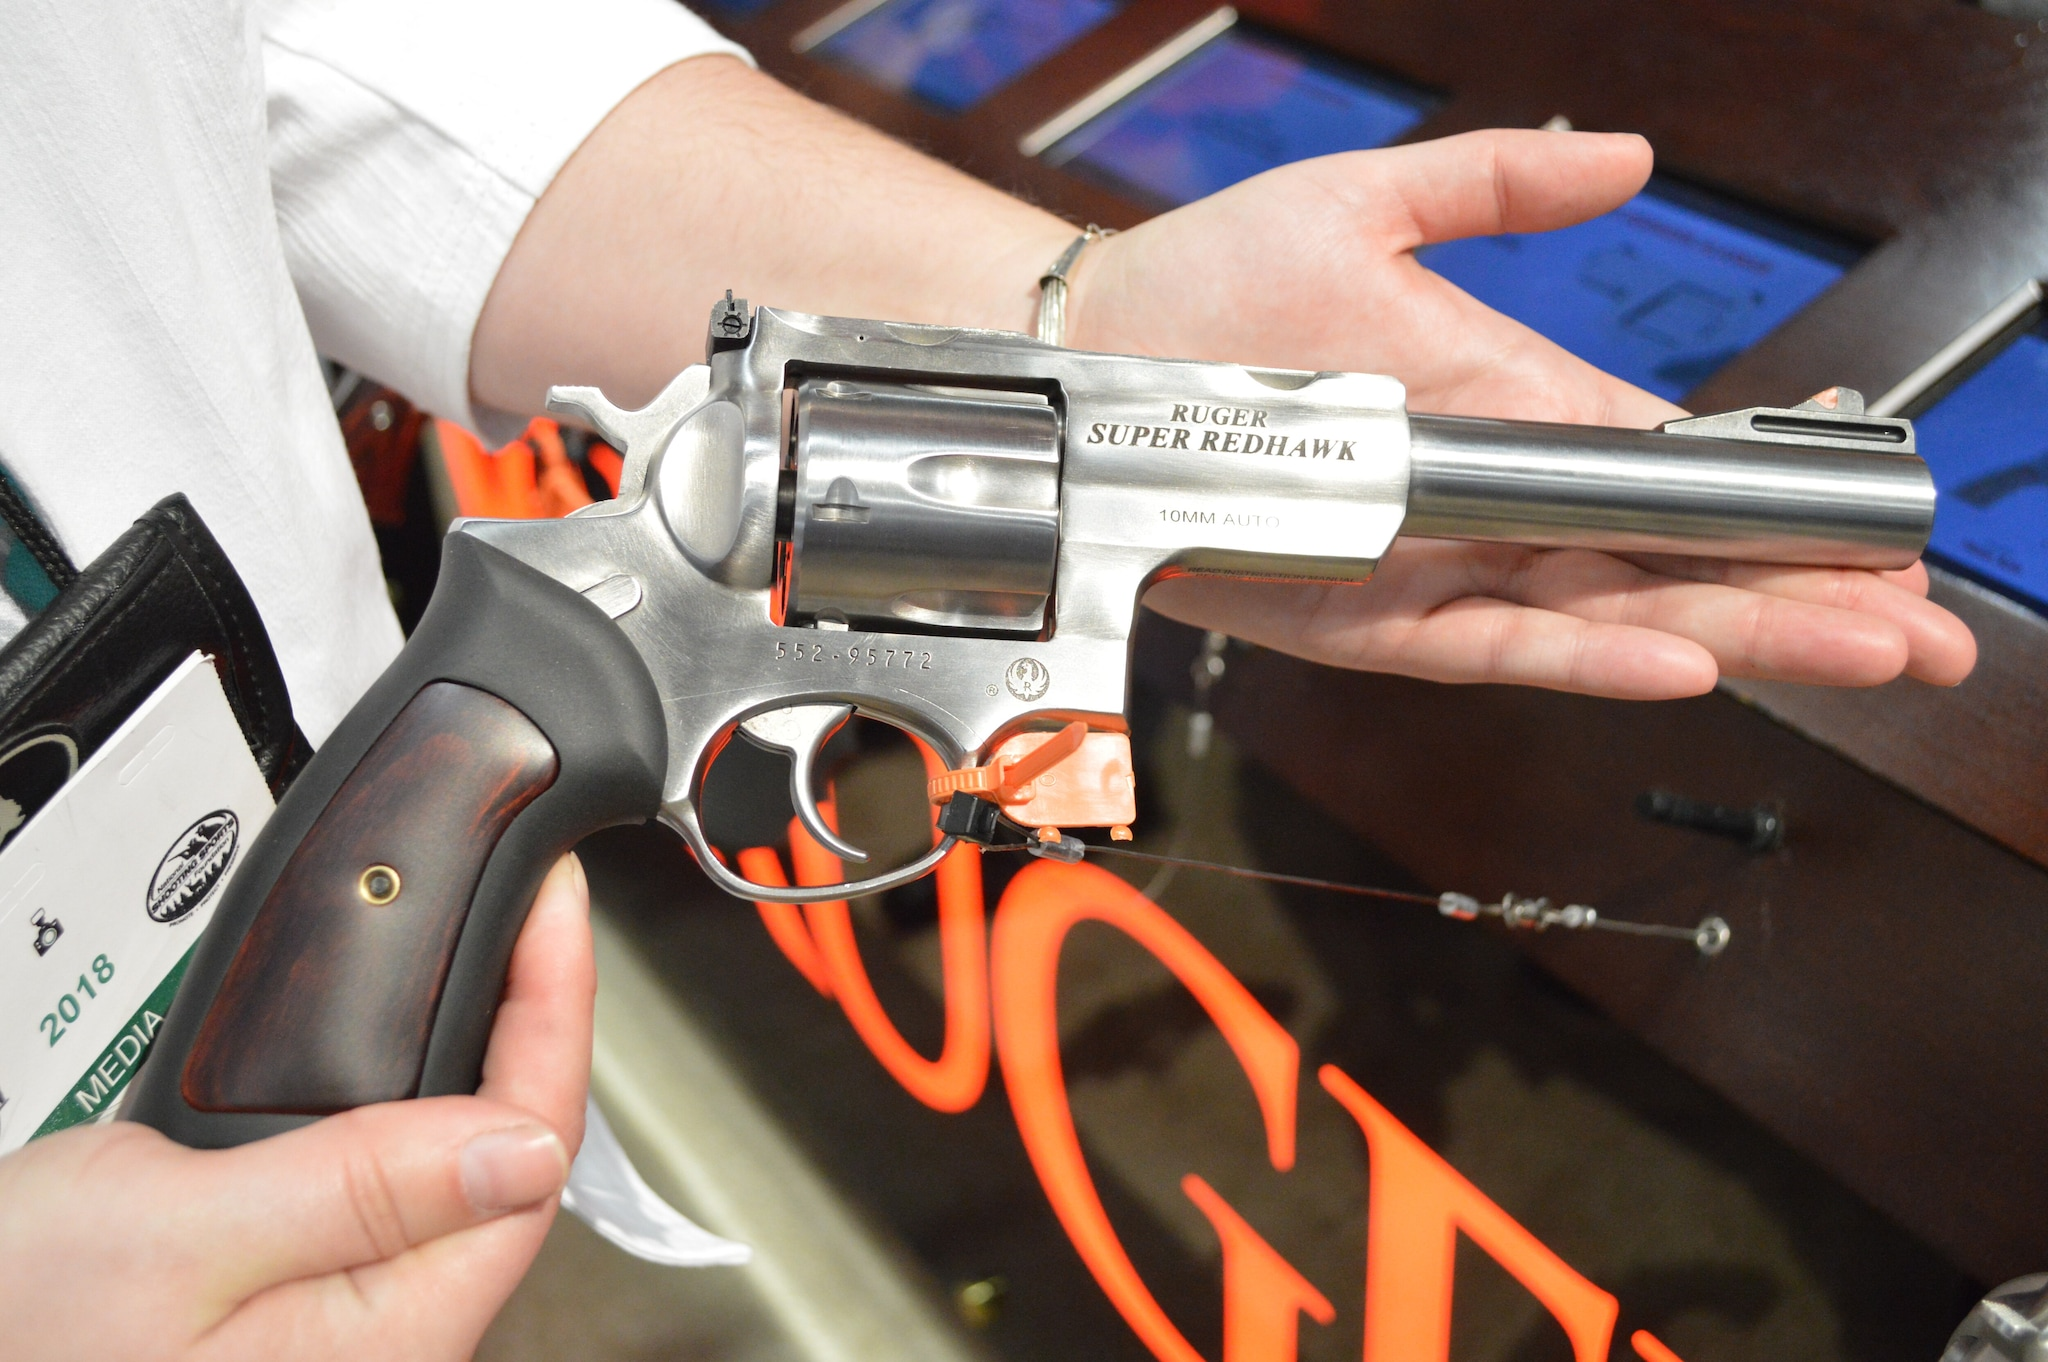 Hunting handguns are hotter now than ever before, especially in the 10mm chambering. Ruger is the first to the table with a hunting specific revolver with their Super Redhawk 10mm. (Photo: Kristin Alberts/Guns.com)